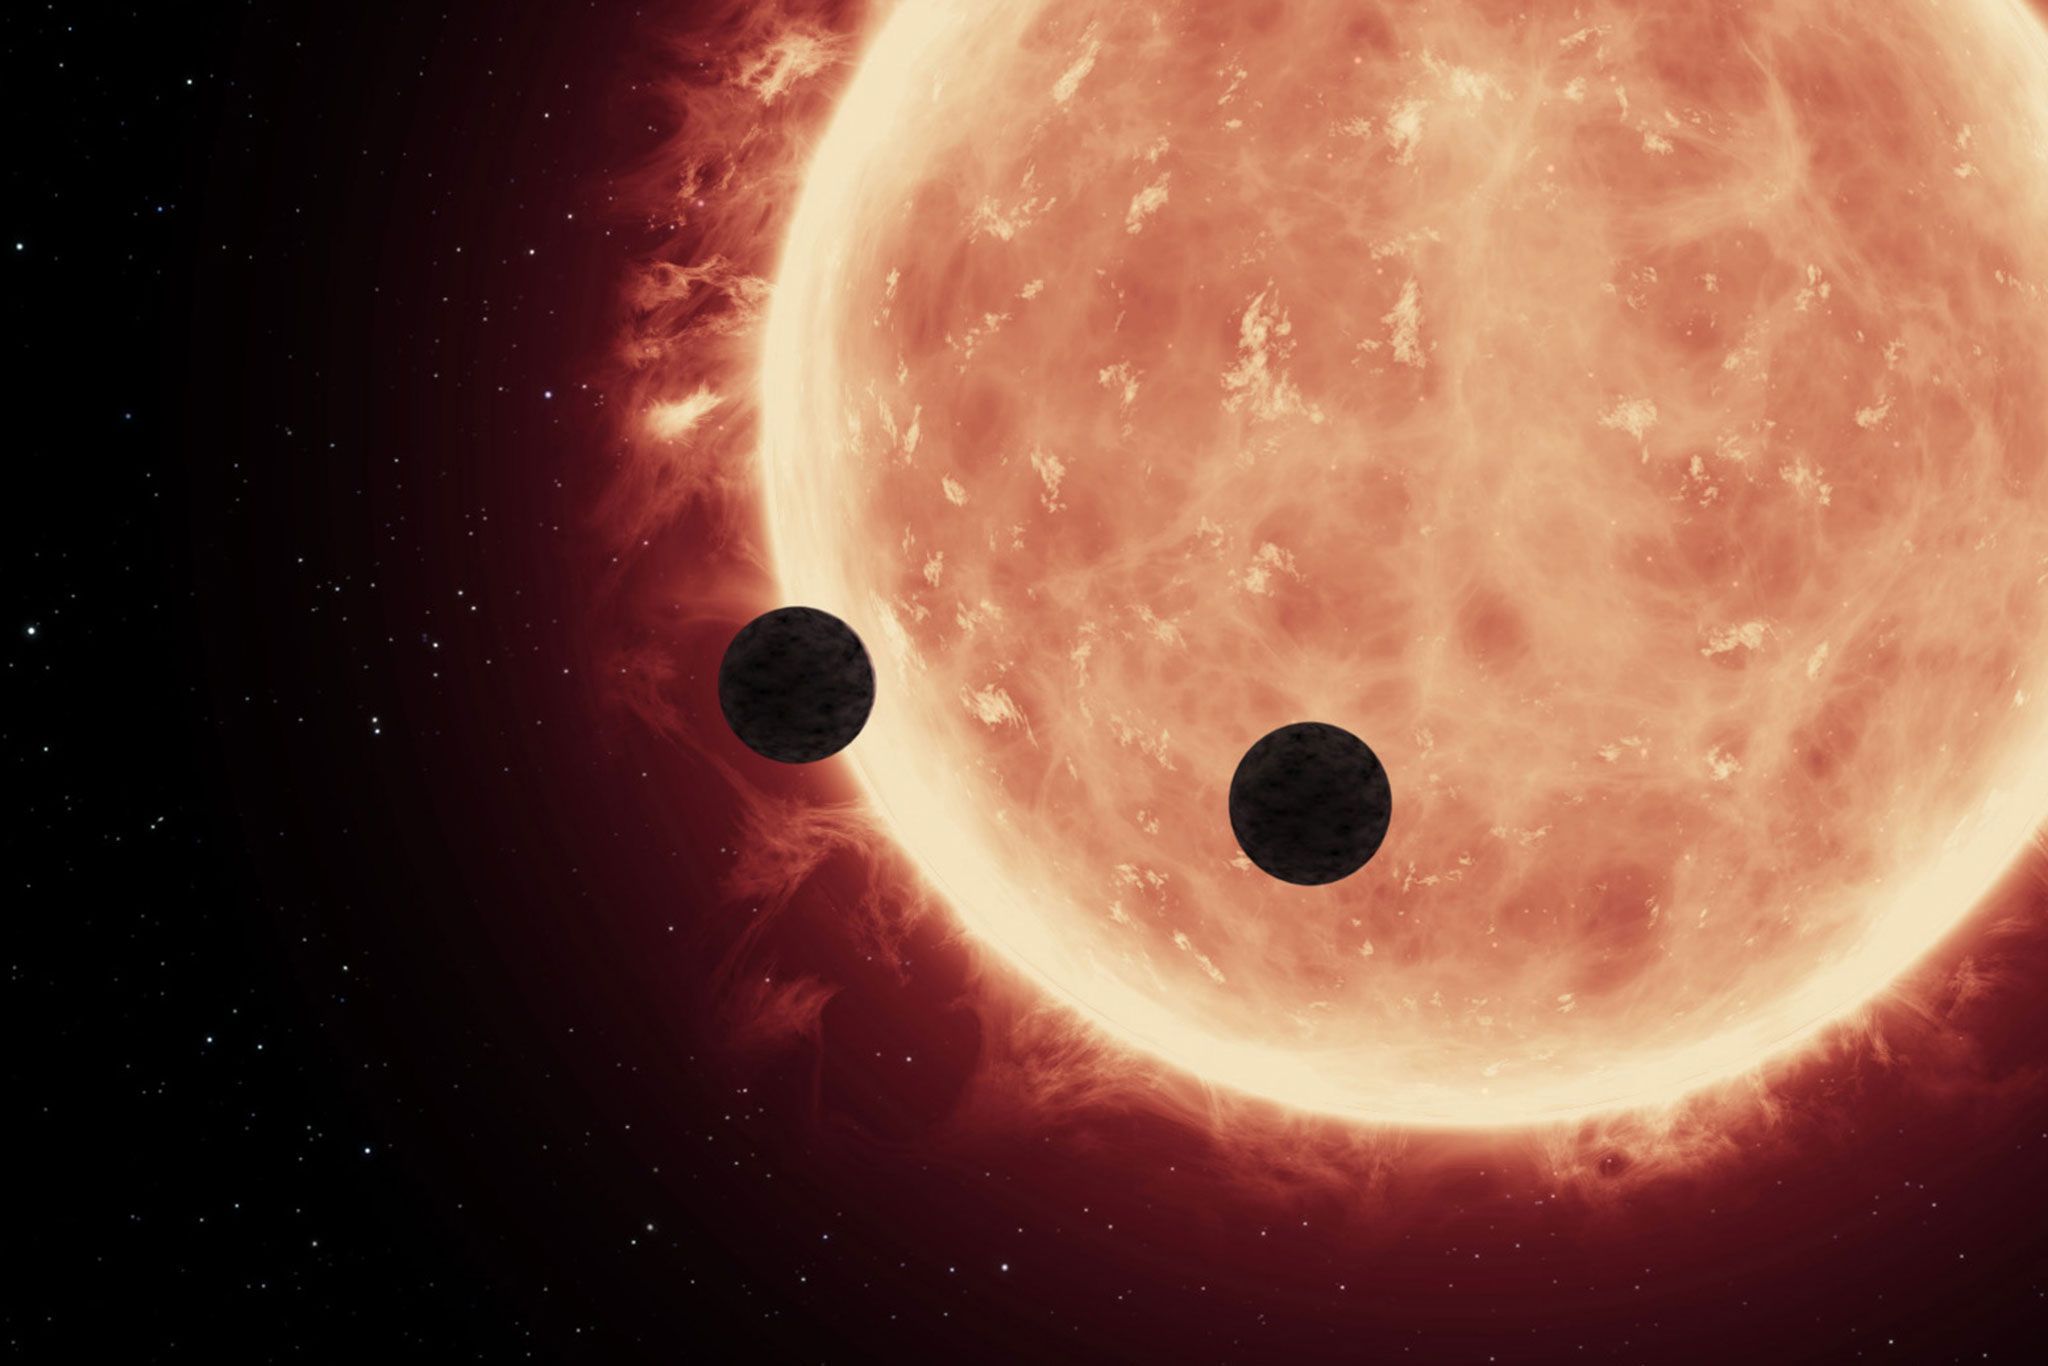 The two potentially habitable exoplanets both seem to have dense, compact blankets of gas like those around Earth or Venus.